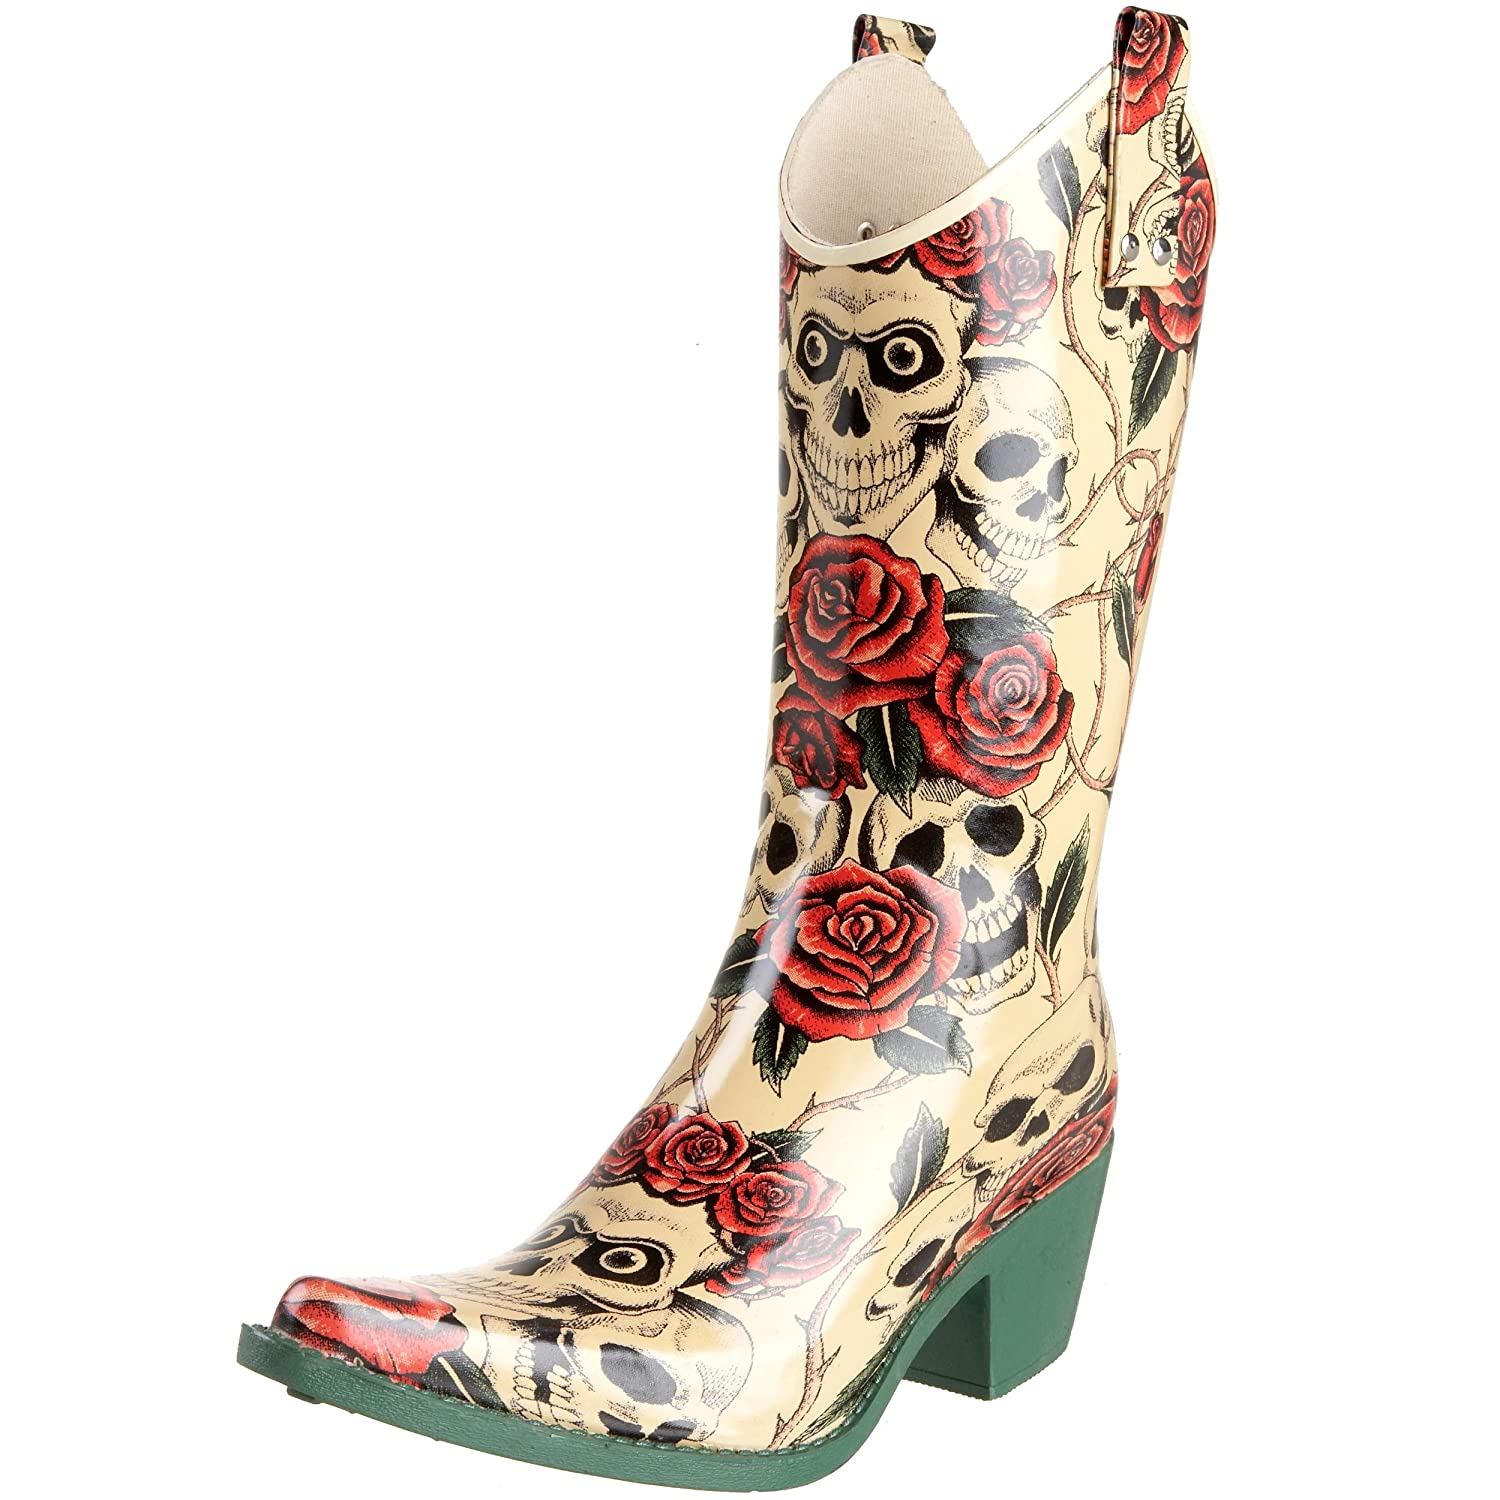 d8cac33d8fc Nomad Women's Yippy Rain Boot: Amazon.co.uk: Shoes & Bags